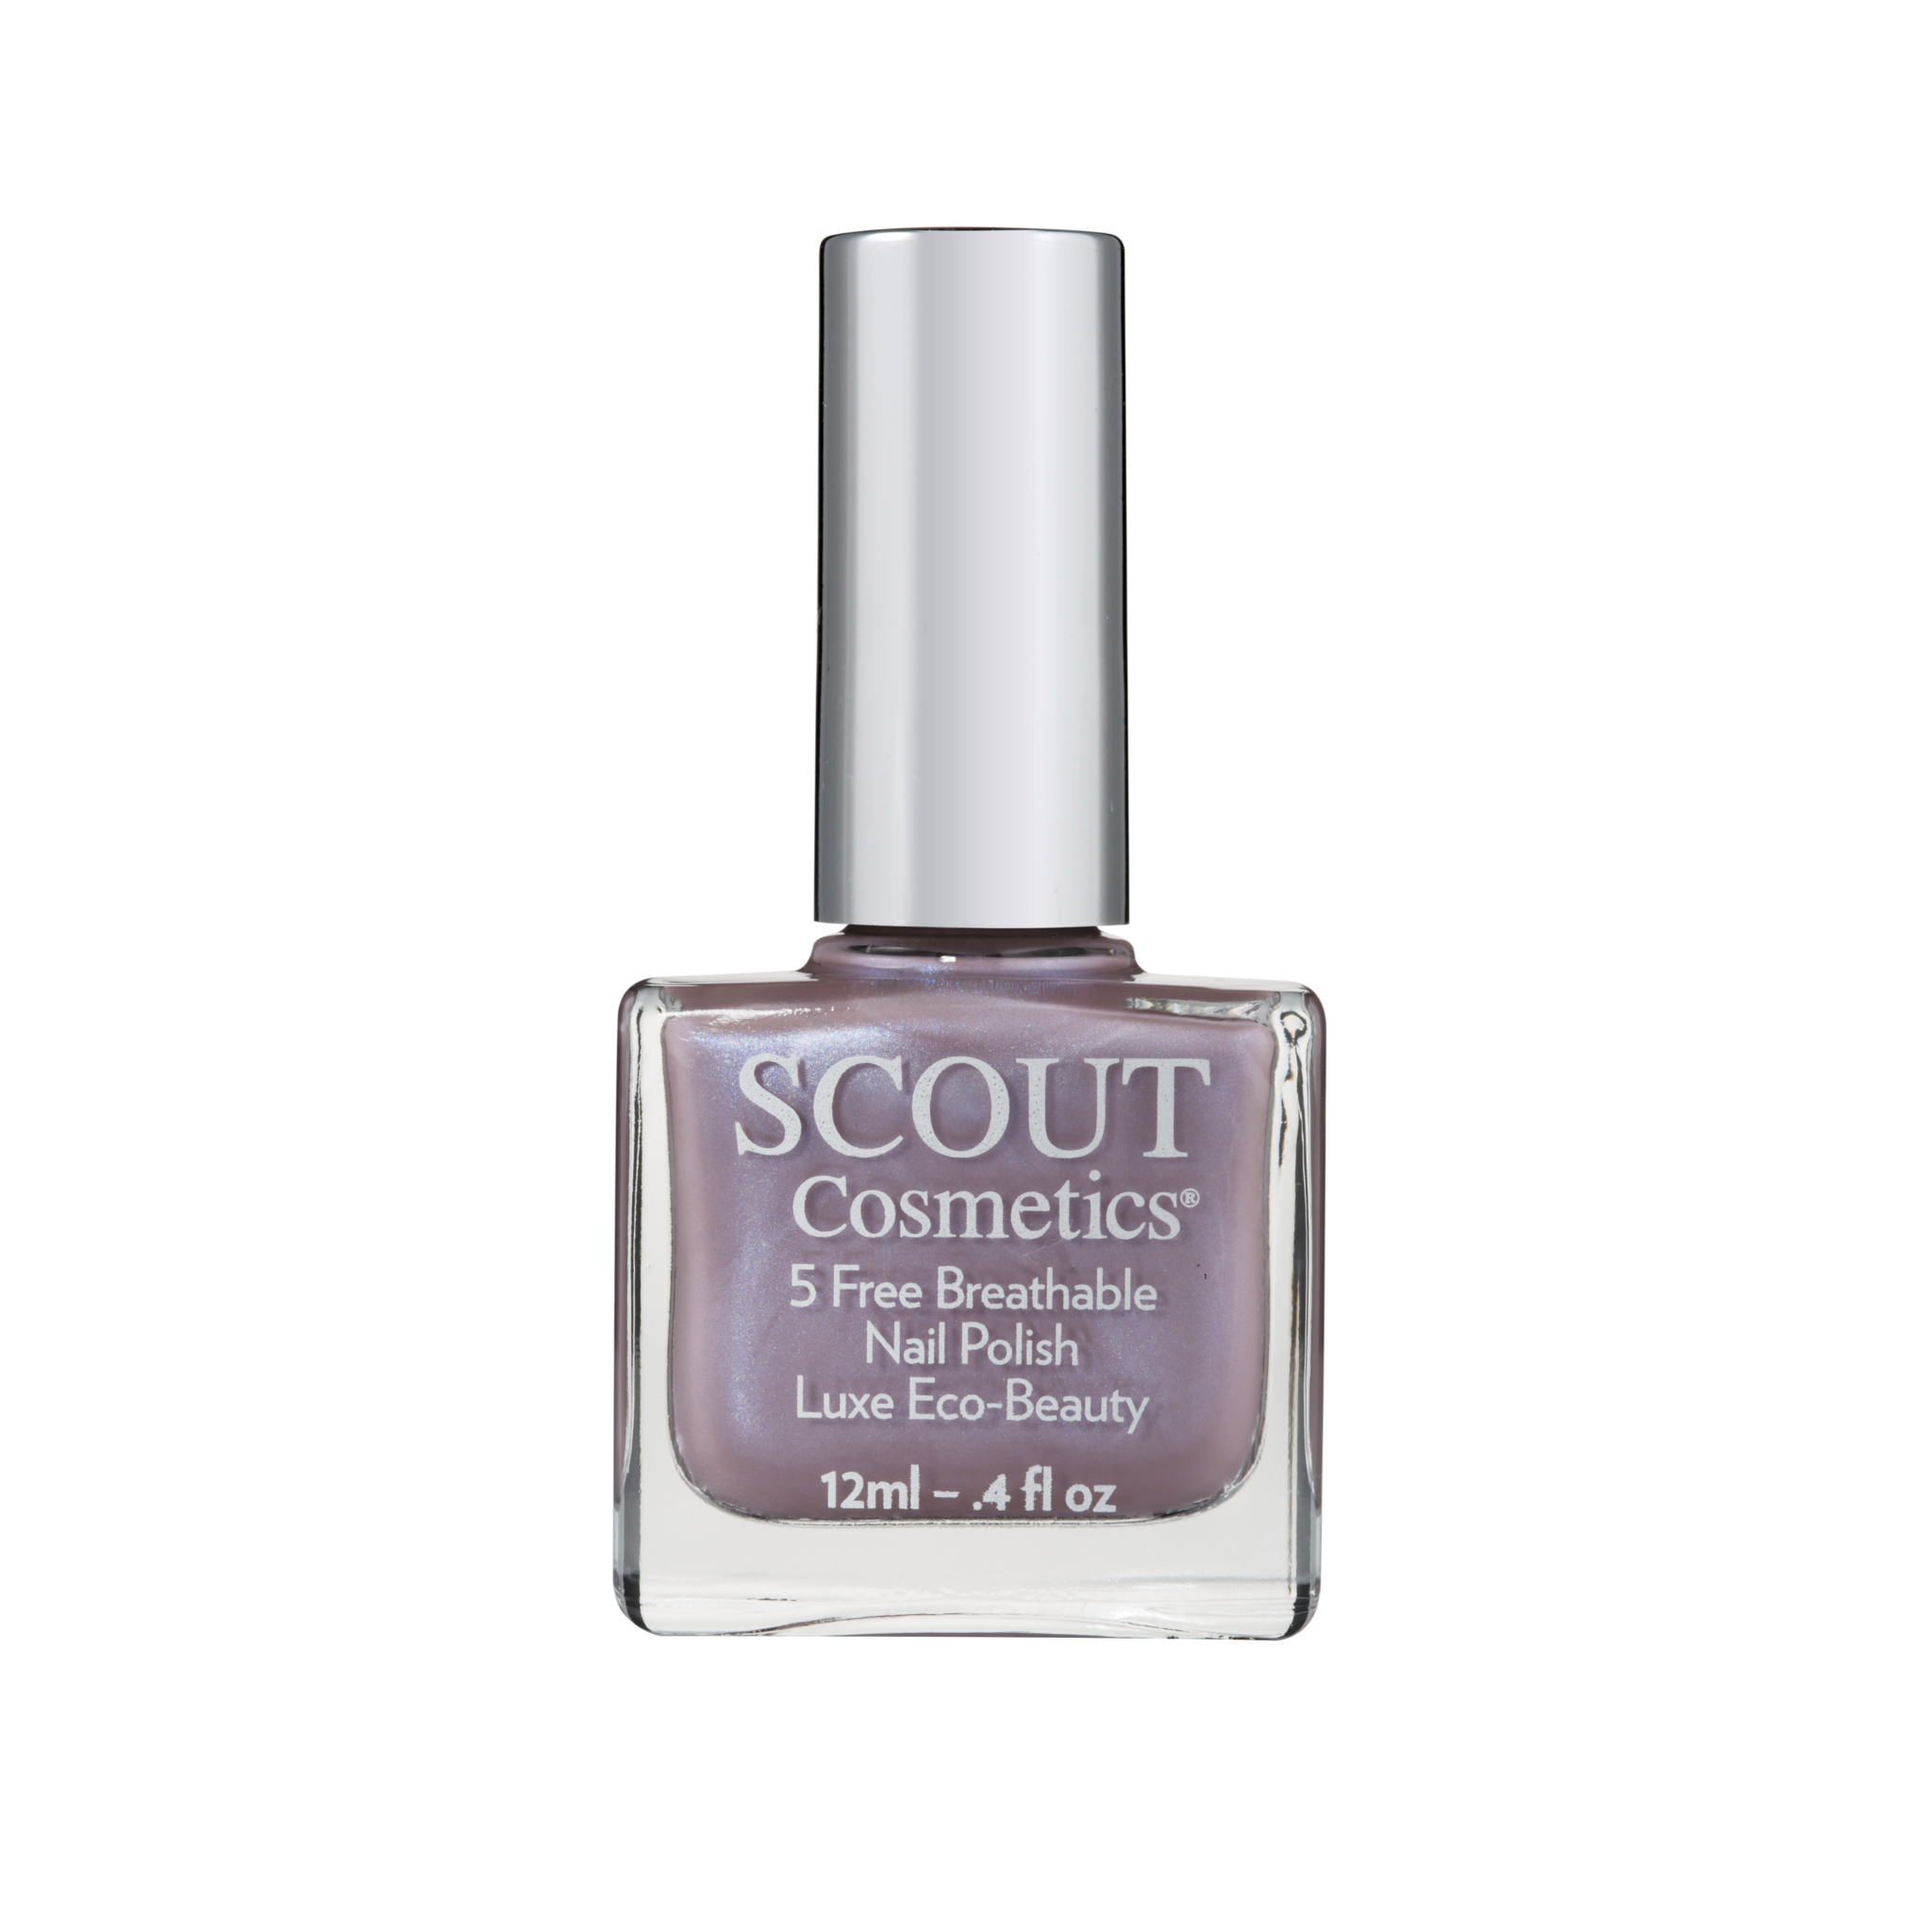 SCOUT Cosmetics Nail Polish - Head Over Heels